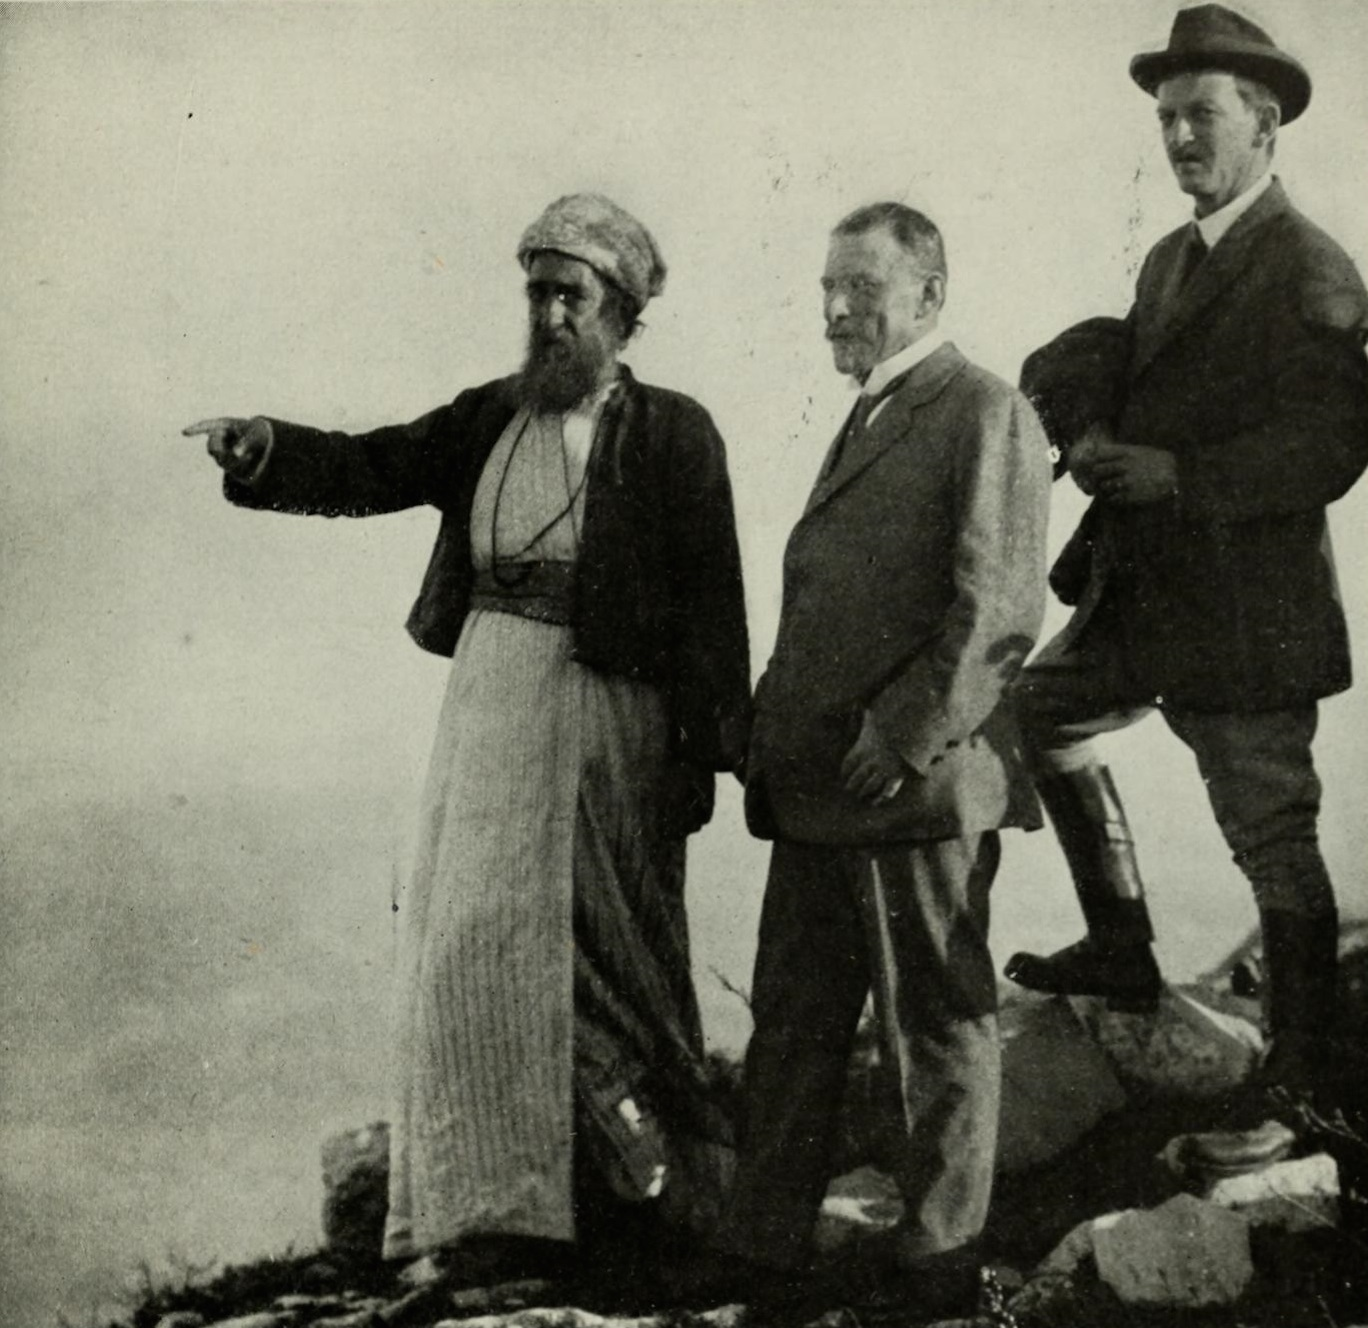 Click photo to download. Caption: U.S. Ambassador to TurkeyHenry Morgenthau, Sr. pictured in Turkish-ruled Palestine. From 1915-1916, thousands of Jews in Palestine died of starvation or diseases aggravated by the lack of food, butMorgenthau played a critical role in rescuing Palestine Jewry from utter devastation. He persuaded President Woodrow Wilson to let U.S. ships bring food and medicine to the Palestine Jewish community, even though that technically meant providing supplies to Turkey, a country with which the U.S. was at war. Credit:The World's Workvia Wikimedia Commons.